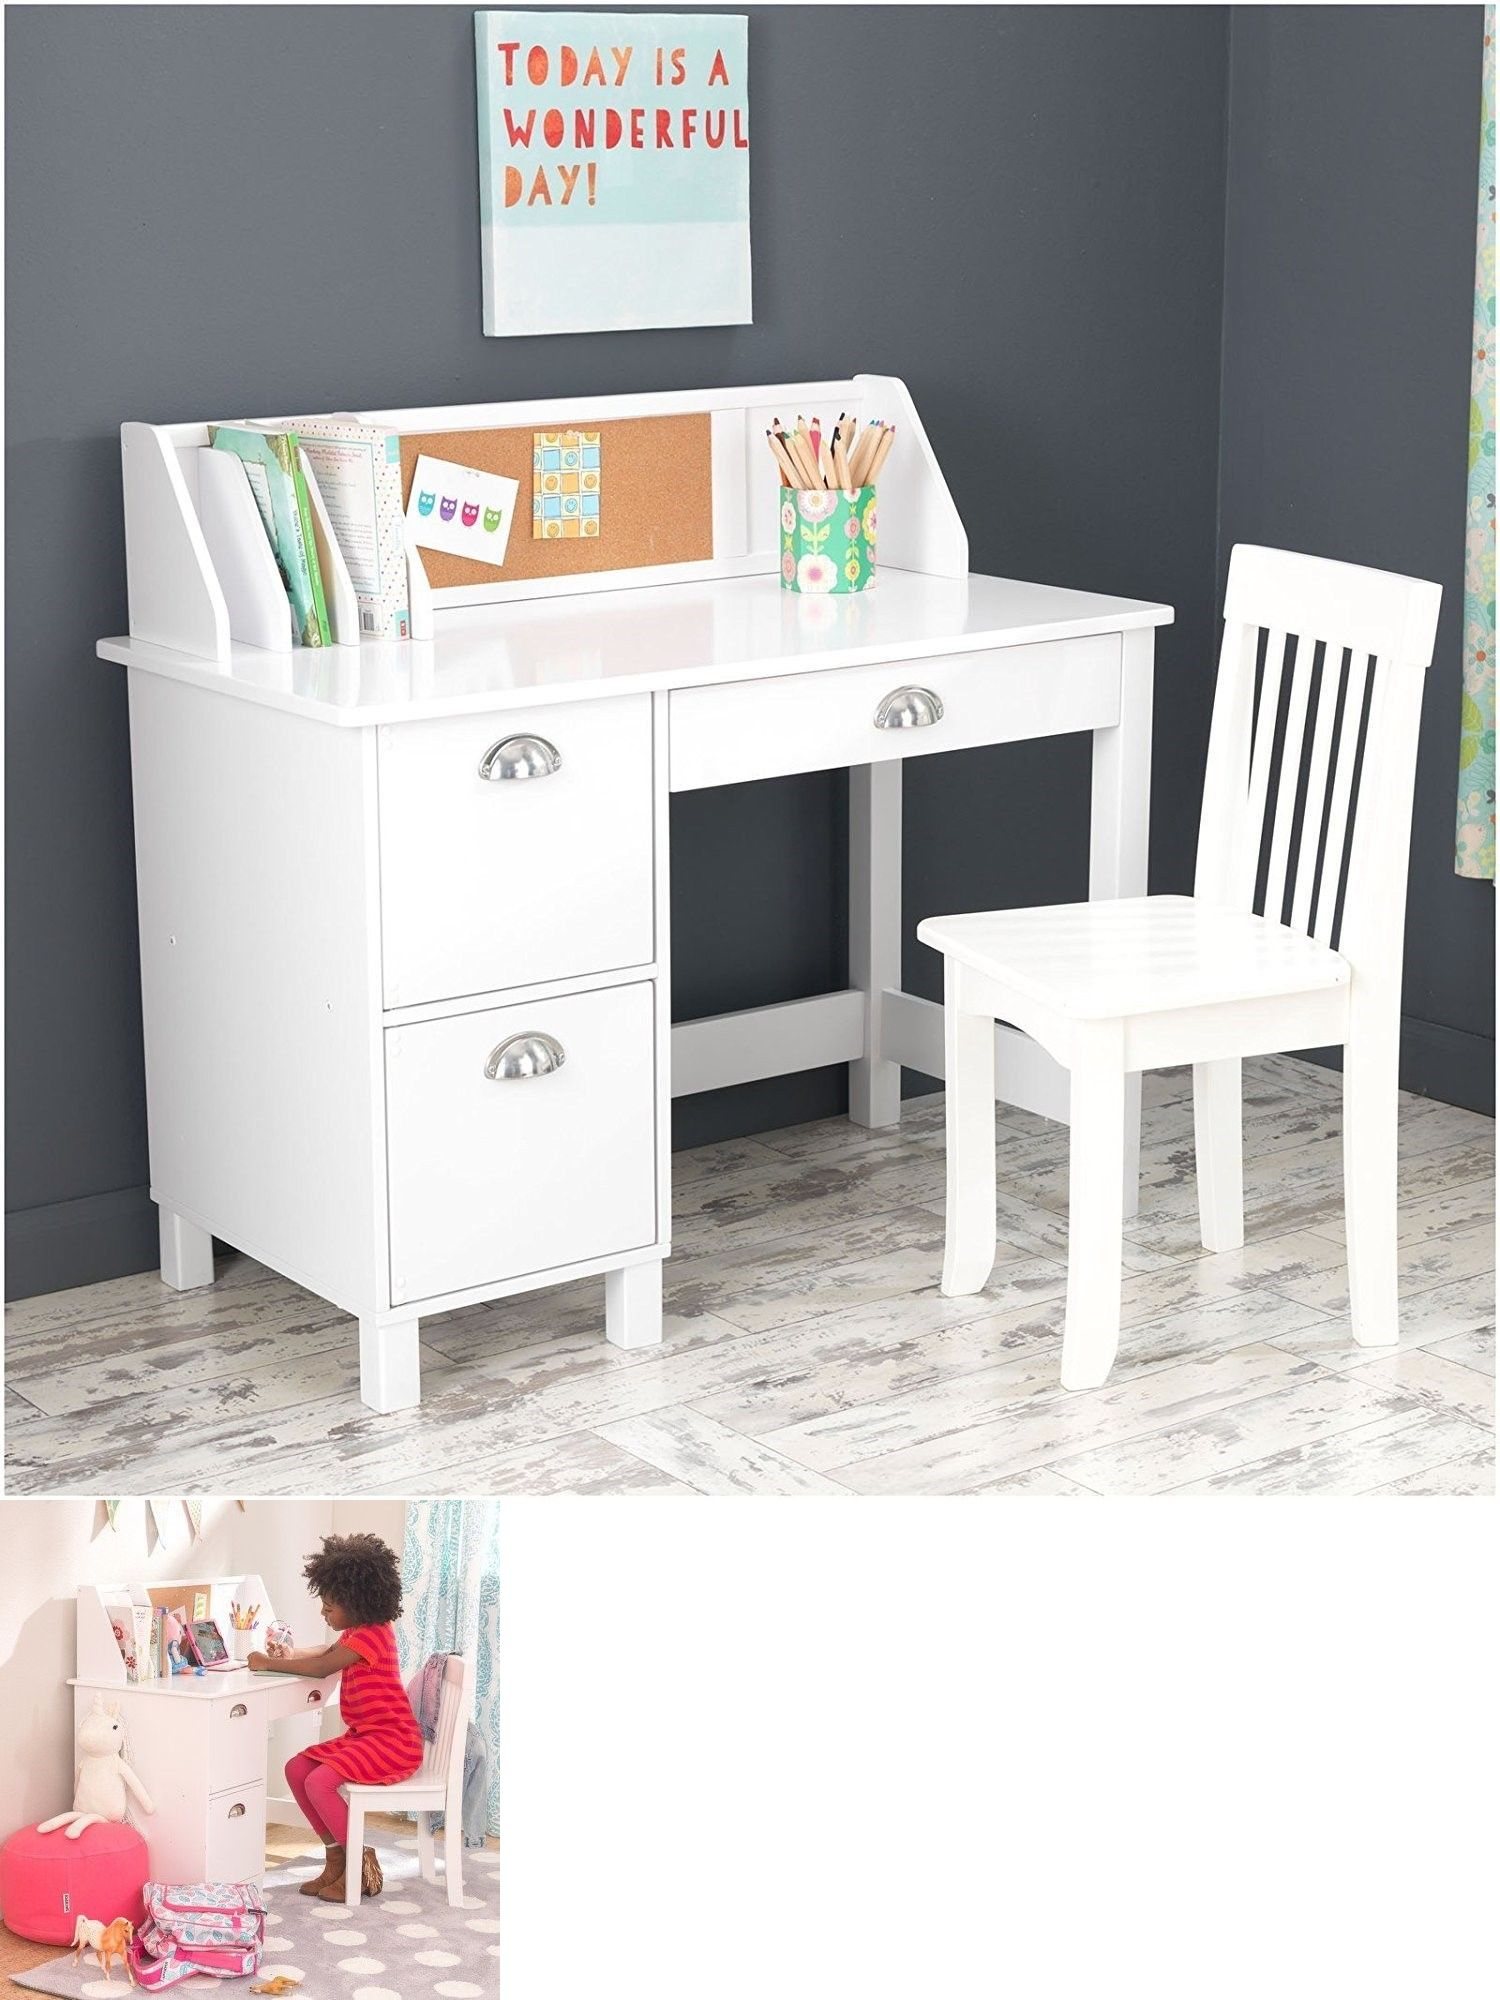 White Wooden Chair For Desk Karlstad Ikea Desks 115750 Kidkraft 26704 Kids Children S Wood Study And W Side Drawers New Buy It Now Only 173 95 On Ebay